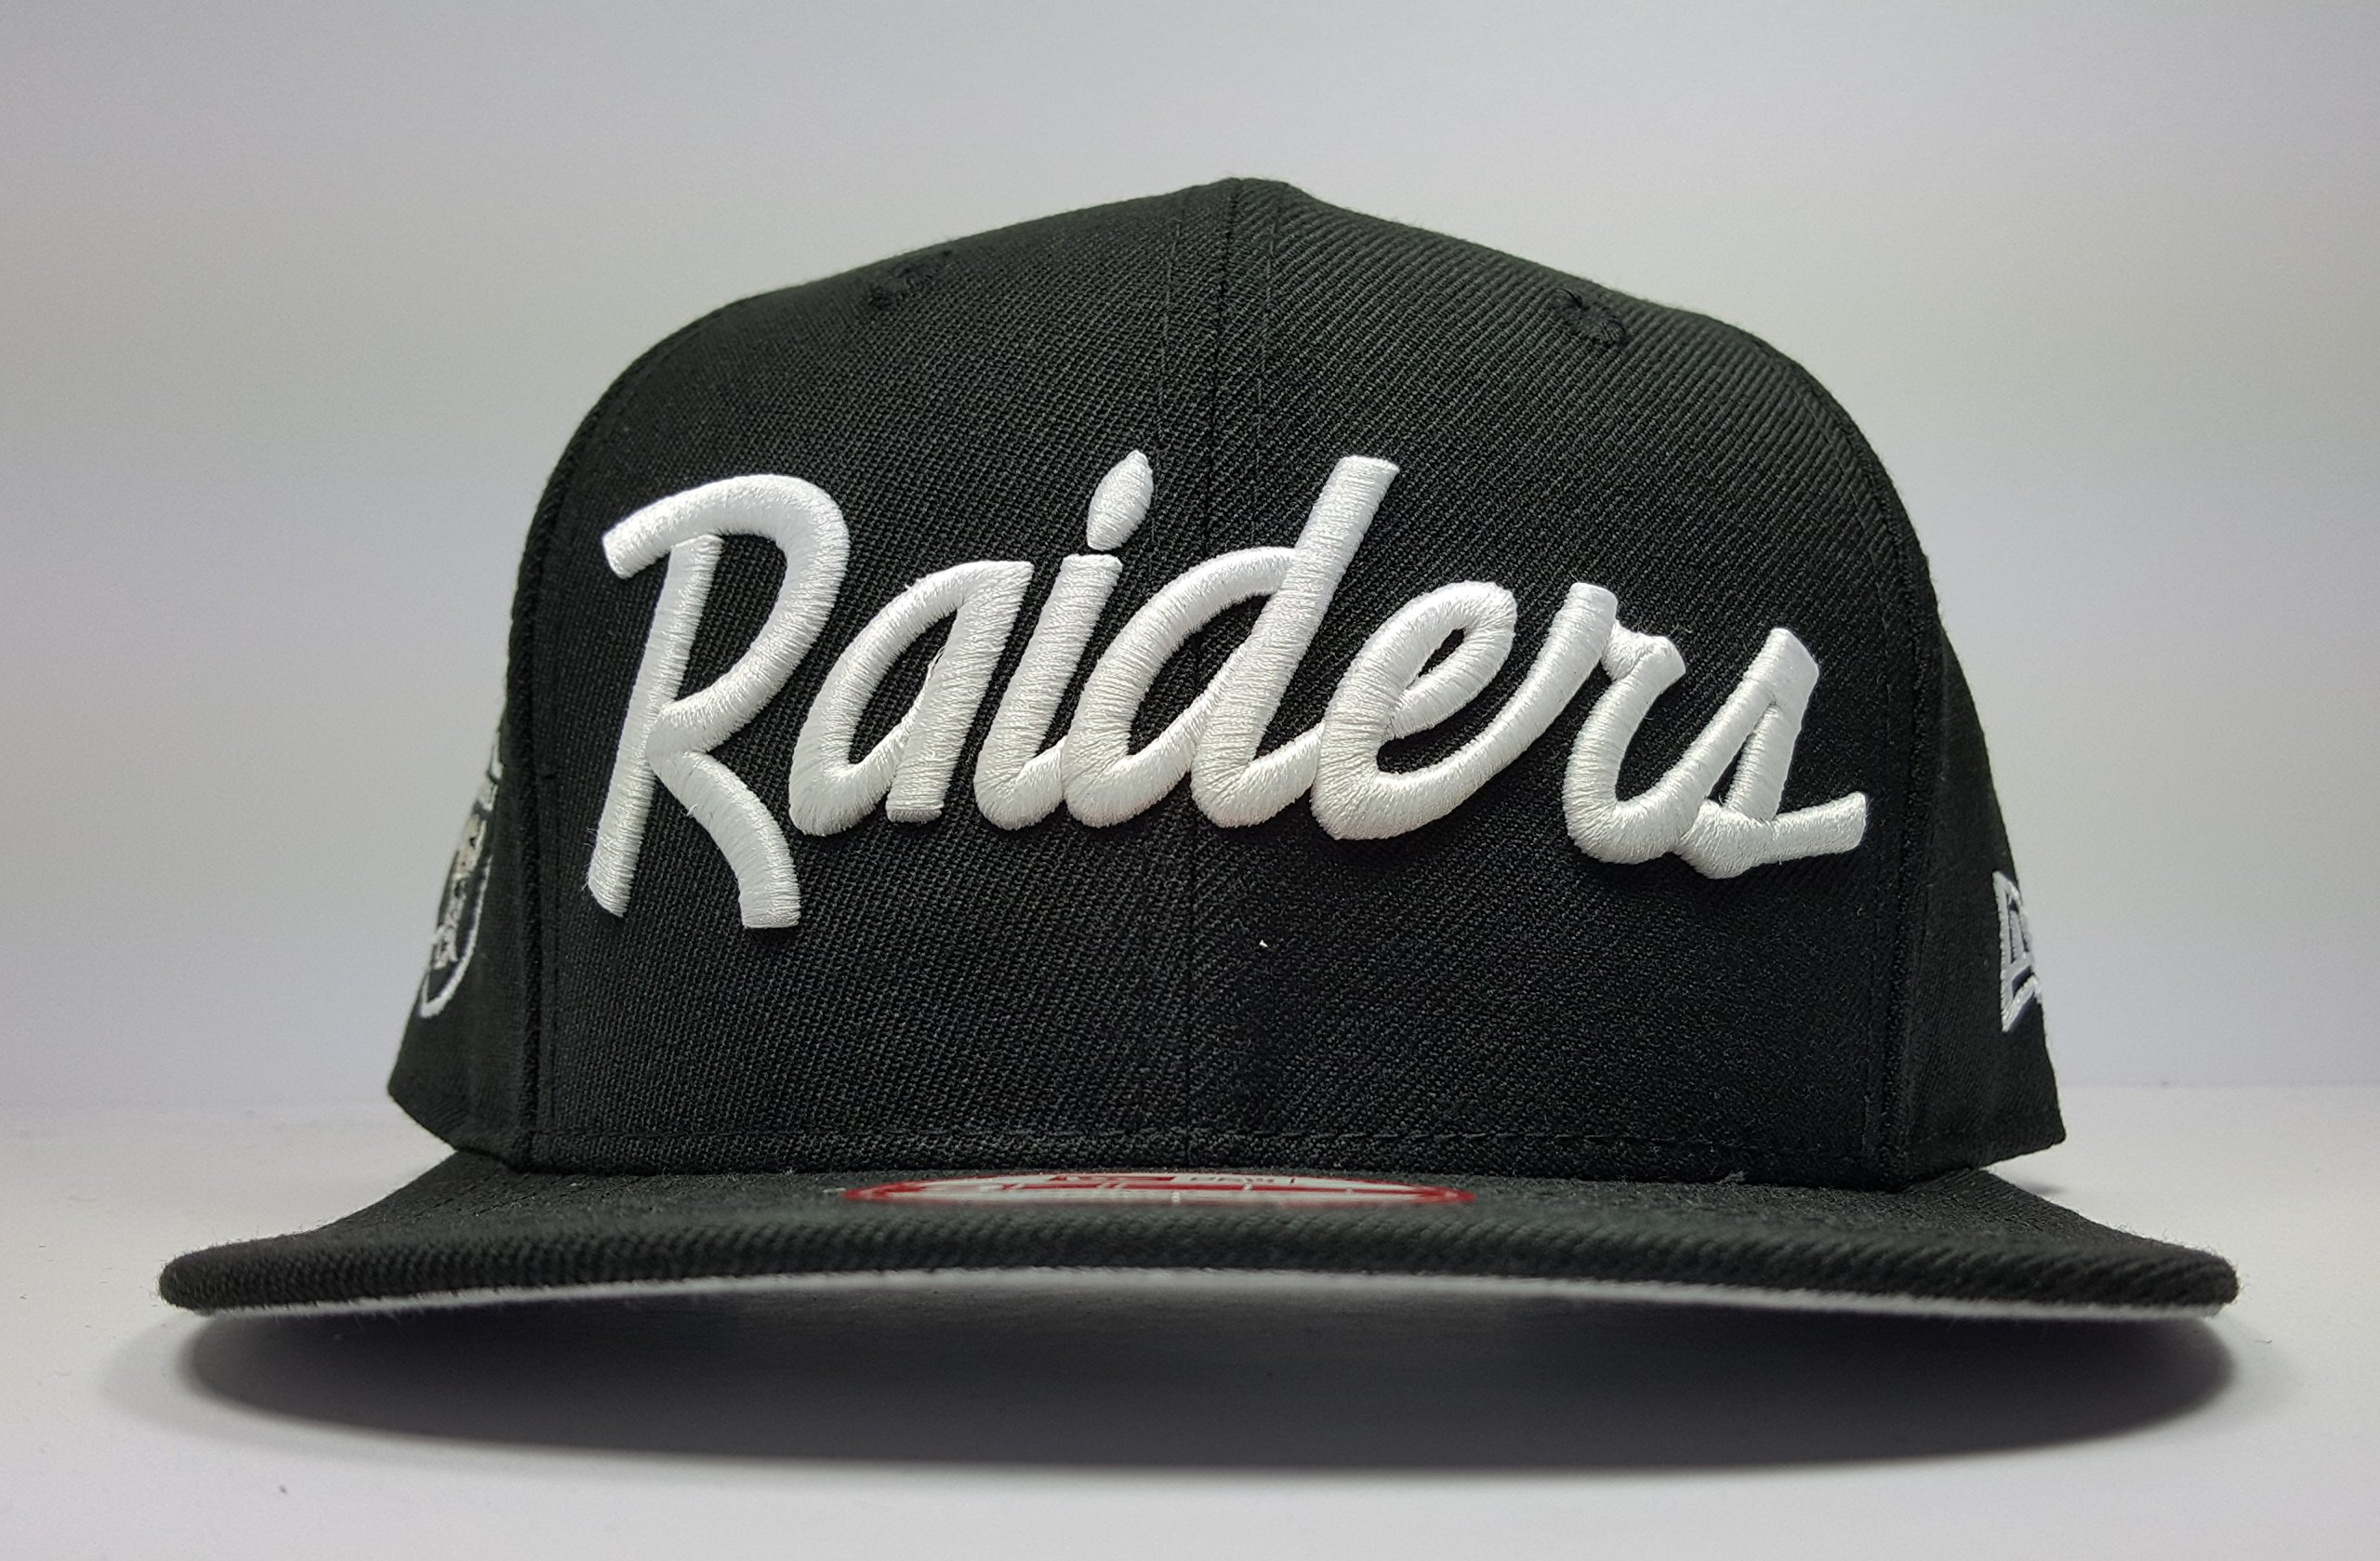 36f6e049bd2 Get Quotations · New Era Los Angeles Raiders 9Fifty Black and White Vintage  Script N.W.A Adjustable Snapback Hat NFL